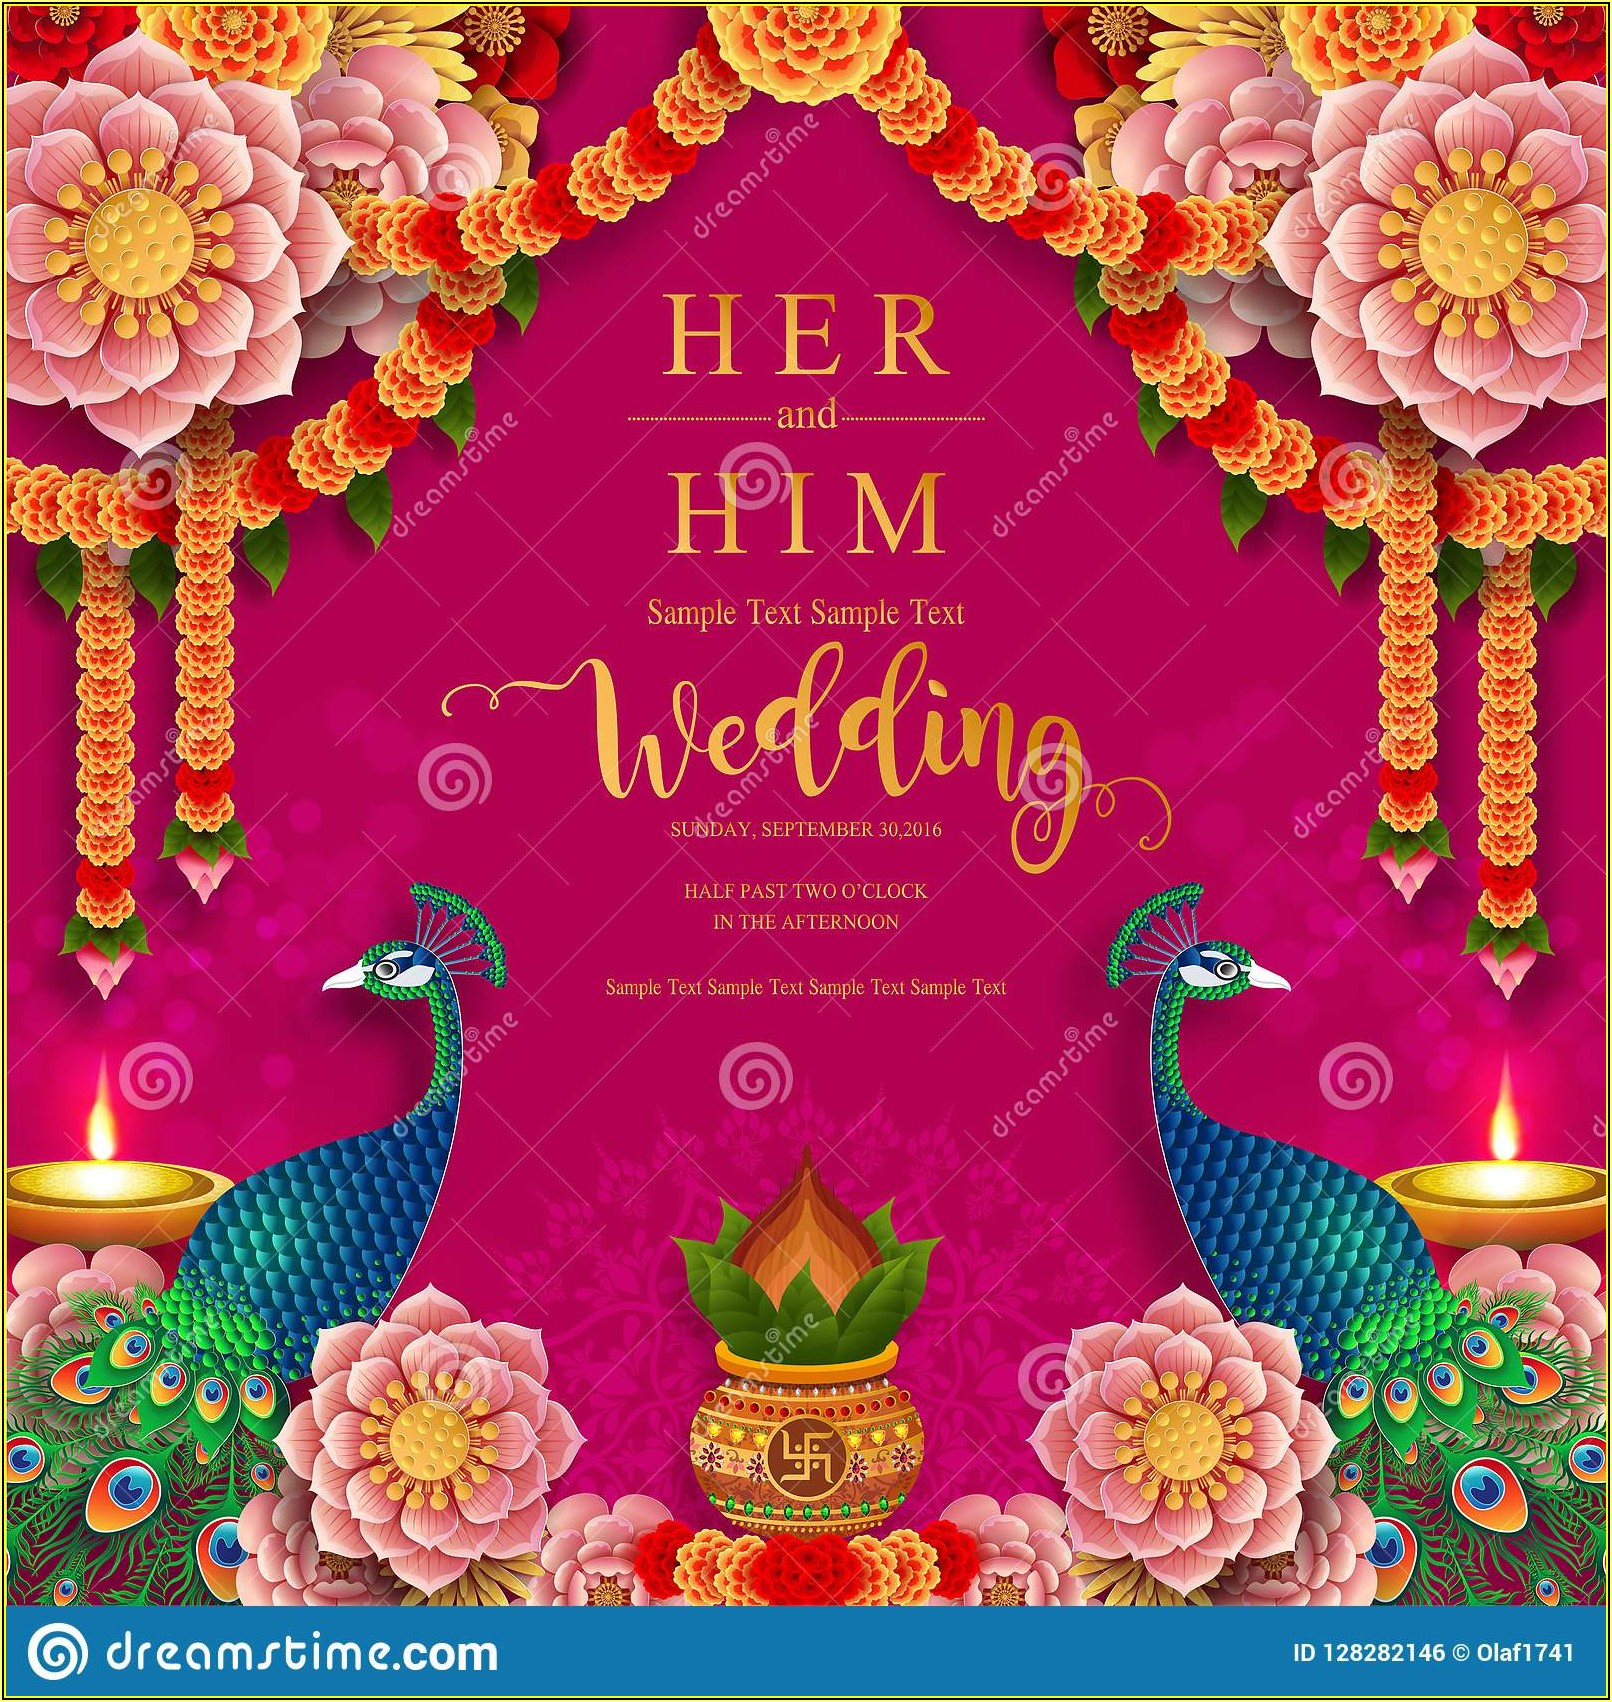 Indian Wedding Invitation Card Template With Gold Patterned And Crystals On Paper Color